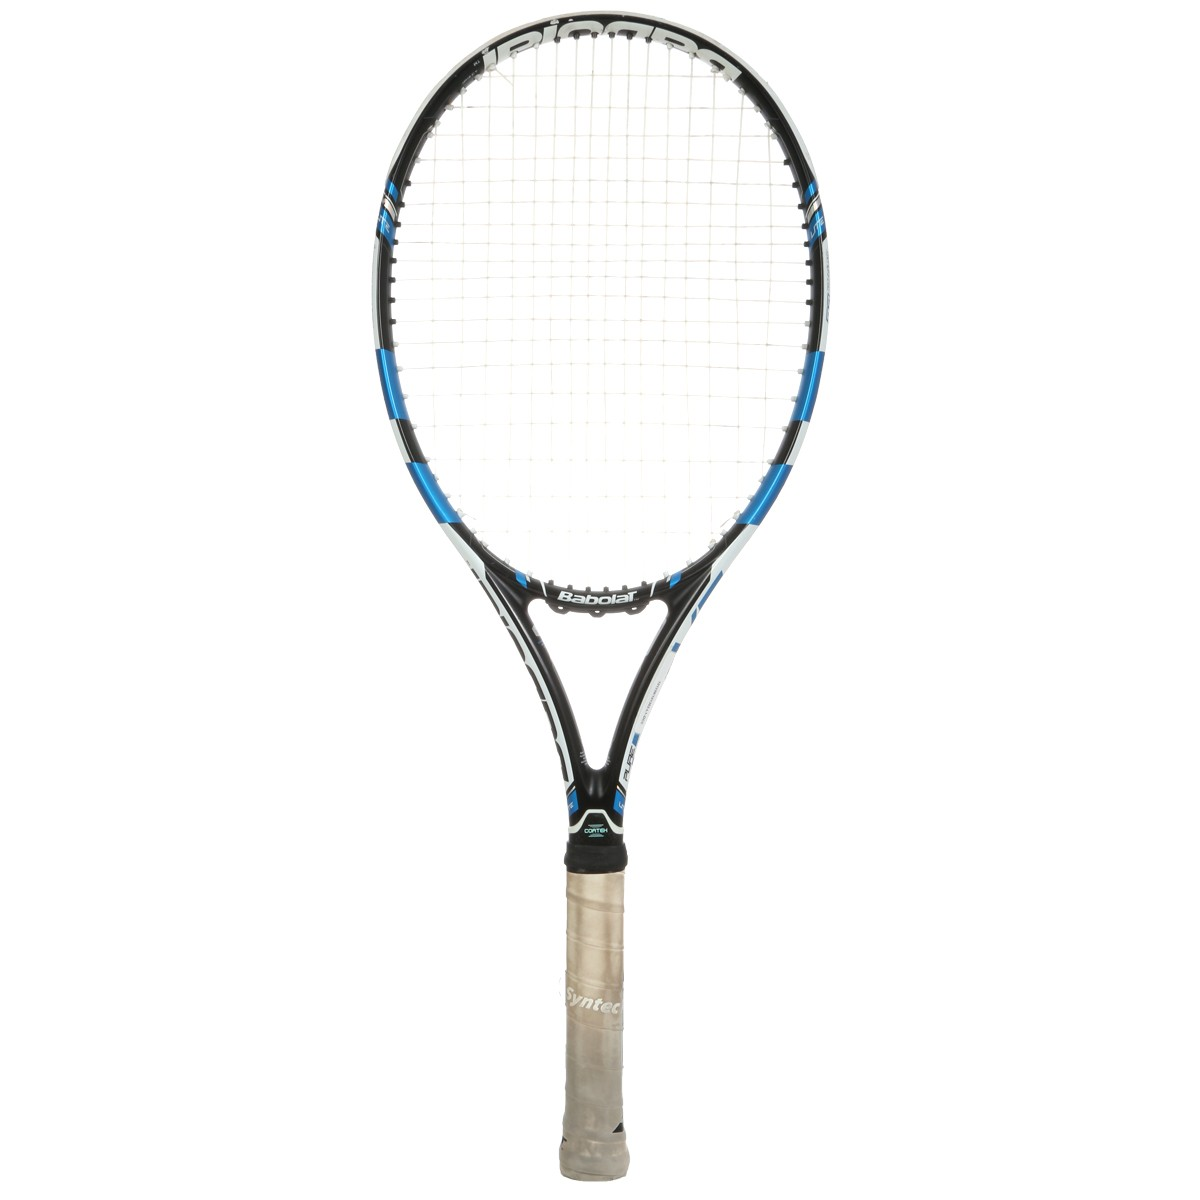 USED RACQUET : BABOLAT PURE DRIVE LITE (270 GR)